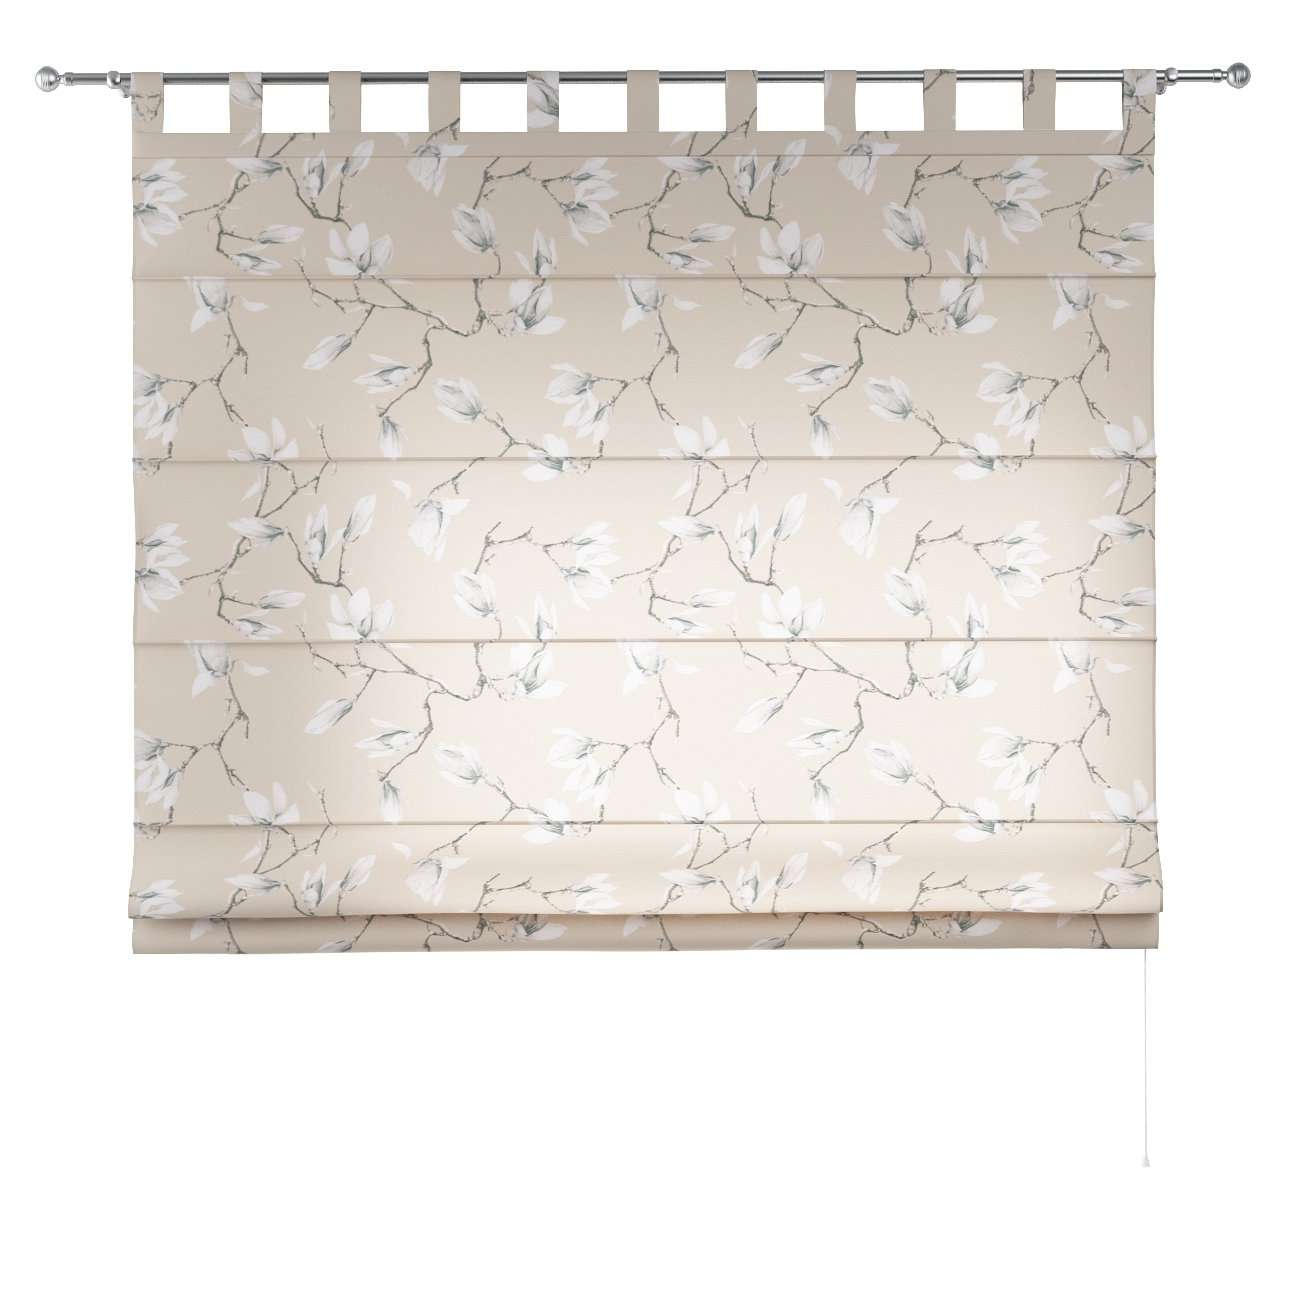 Verona tab top roman blind 80 x 170 cm (31.5 x 67 inch) in collection Flowers, fabric: 311-12